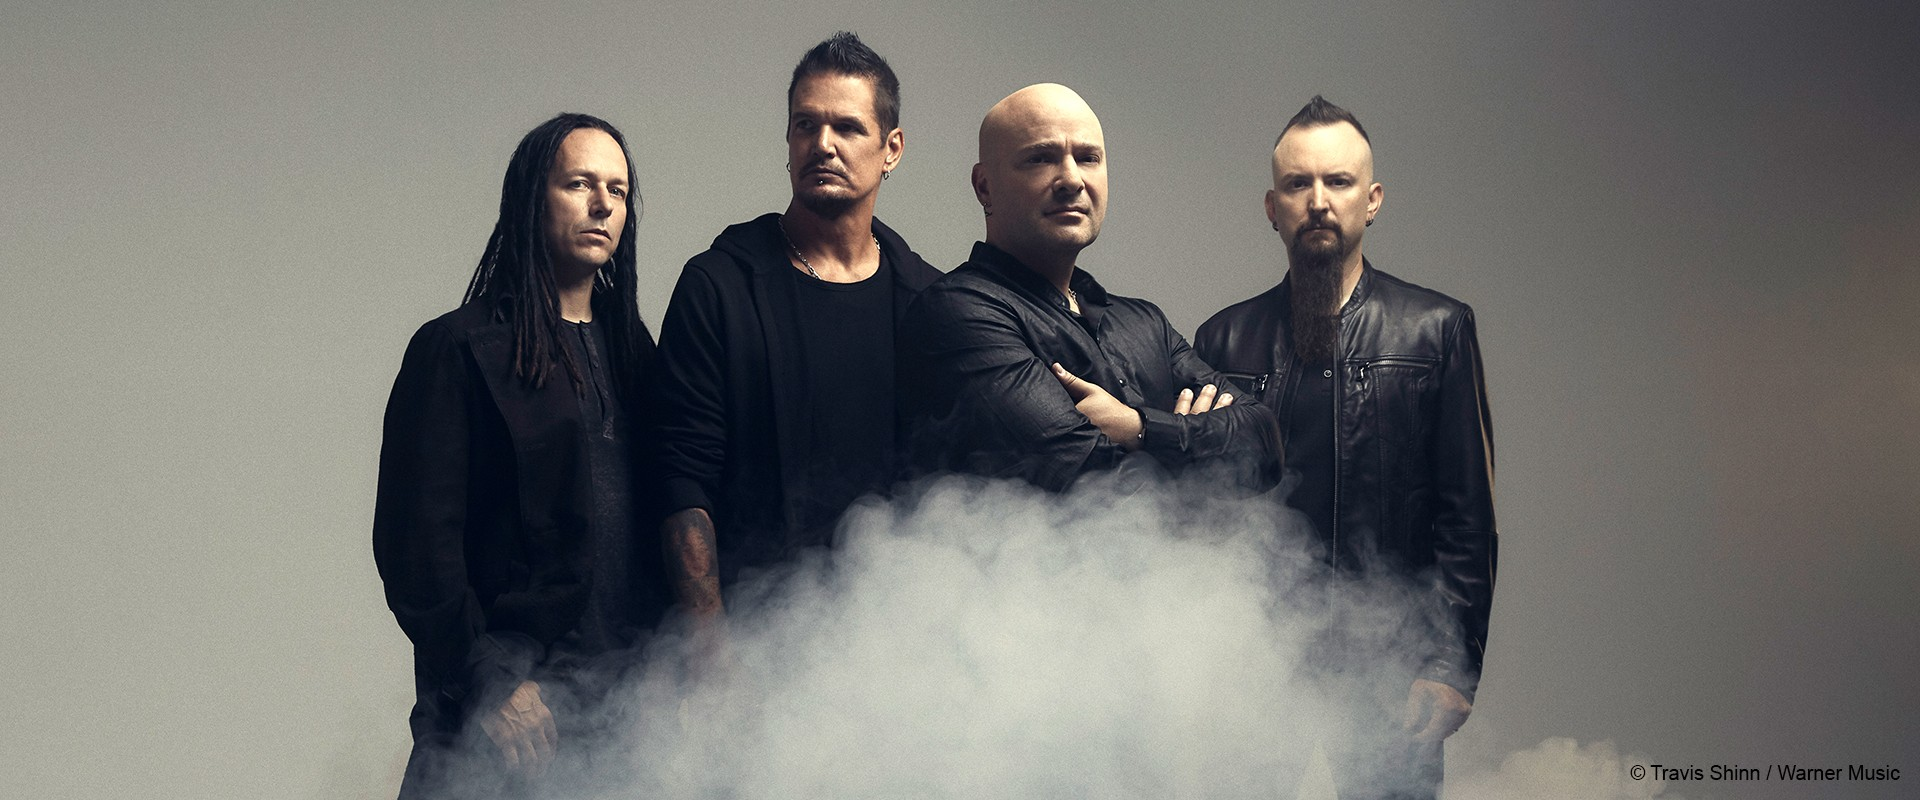 David Draiman will Nationalhymne beim Super Bowl 2020 singen